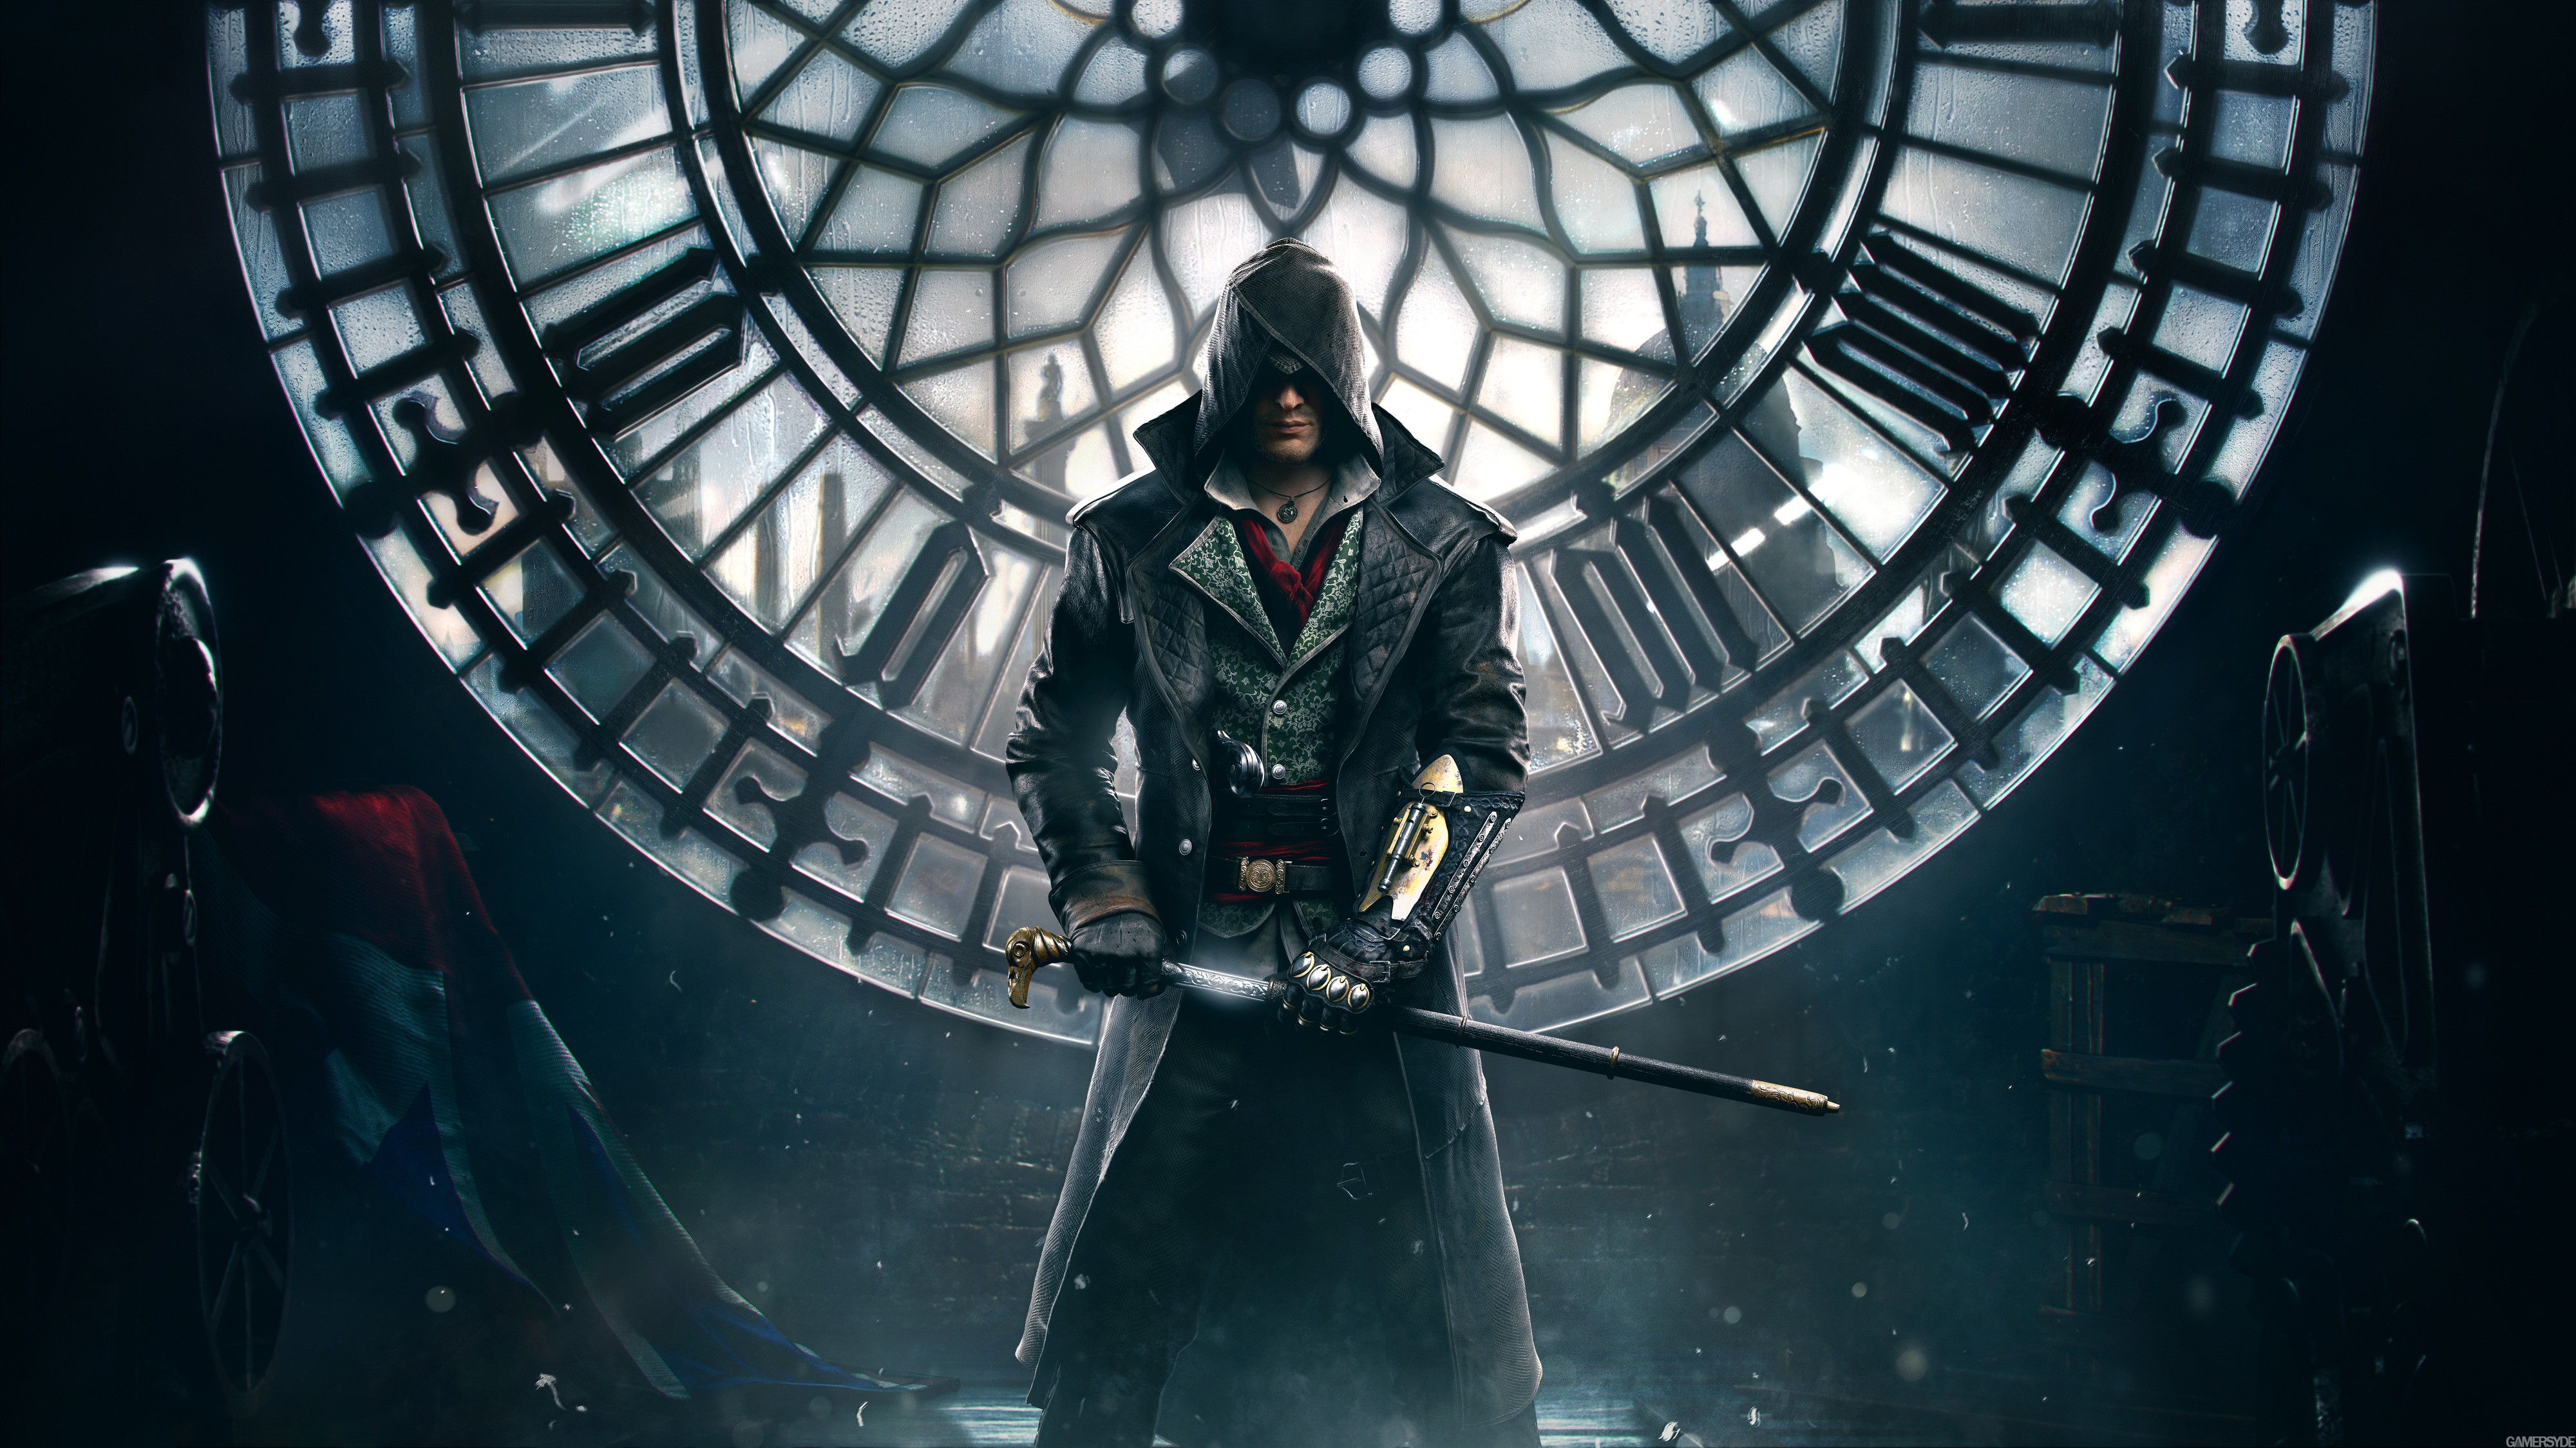 Wallpaper Assassins Creed Syndicate Best Games 2015 Game Open